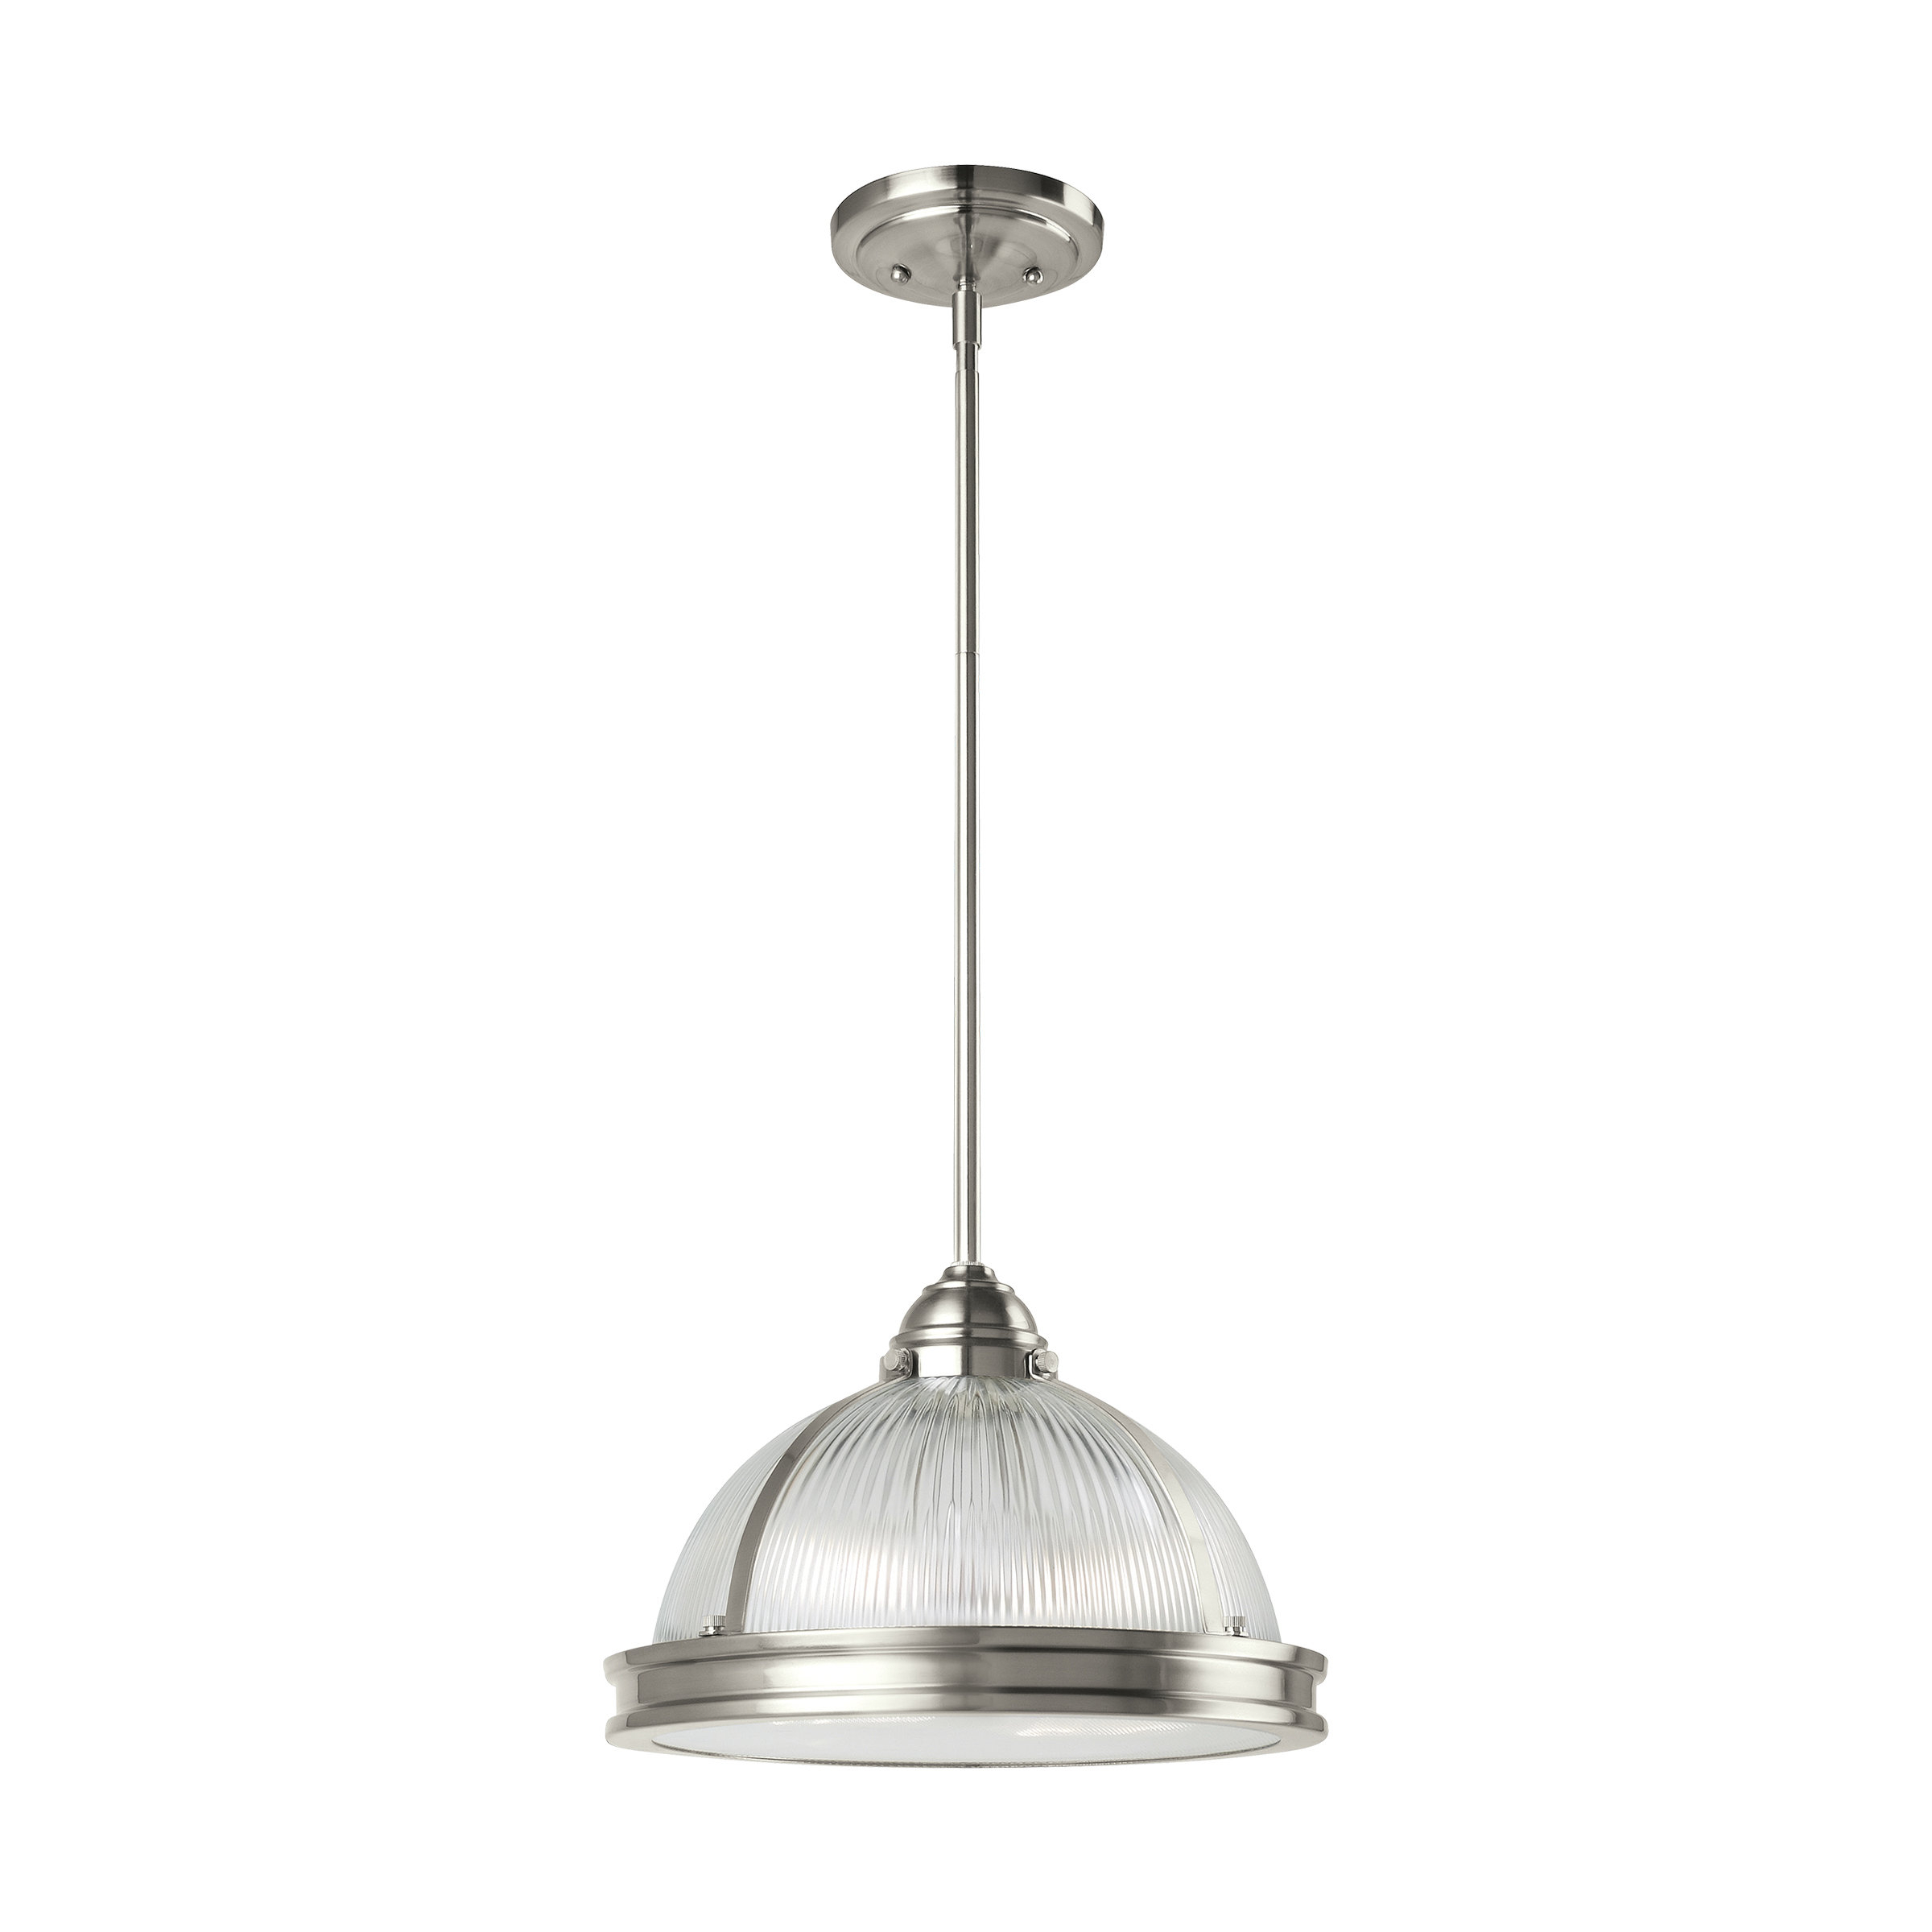 Most Popular Granville 2 Light Single Dome Pendant Throughout Granville 3 Light Single Dome Pendants (View 4 of 25)